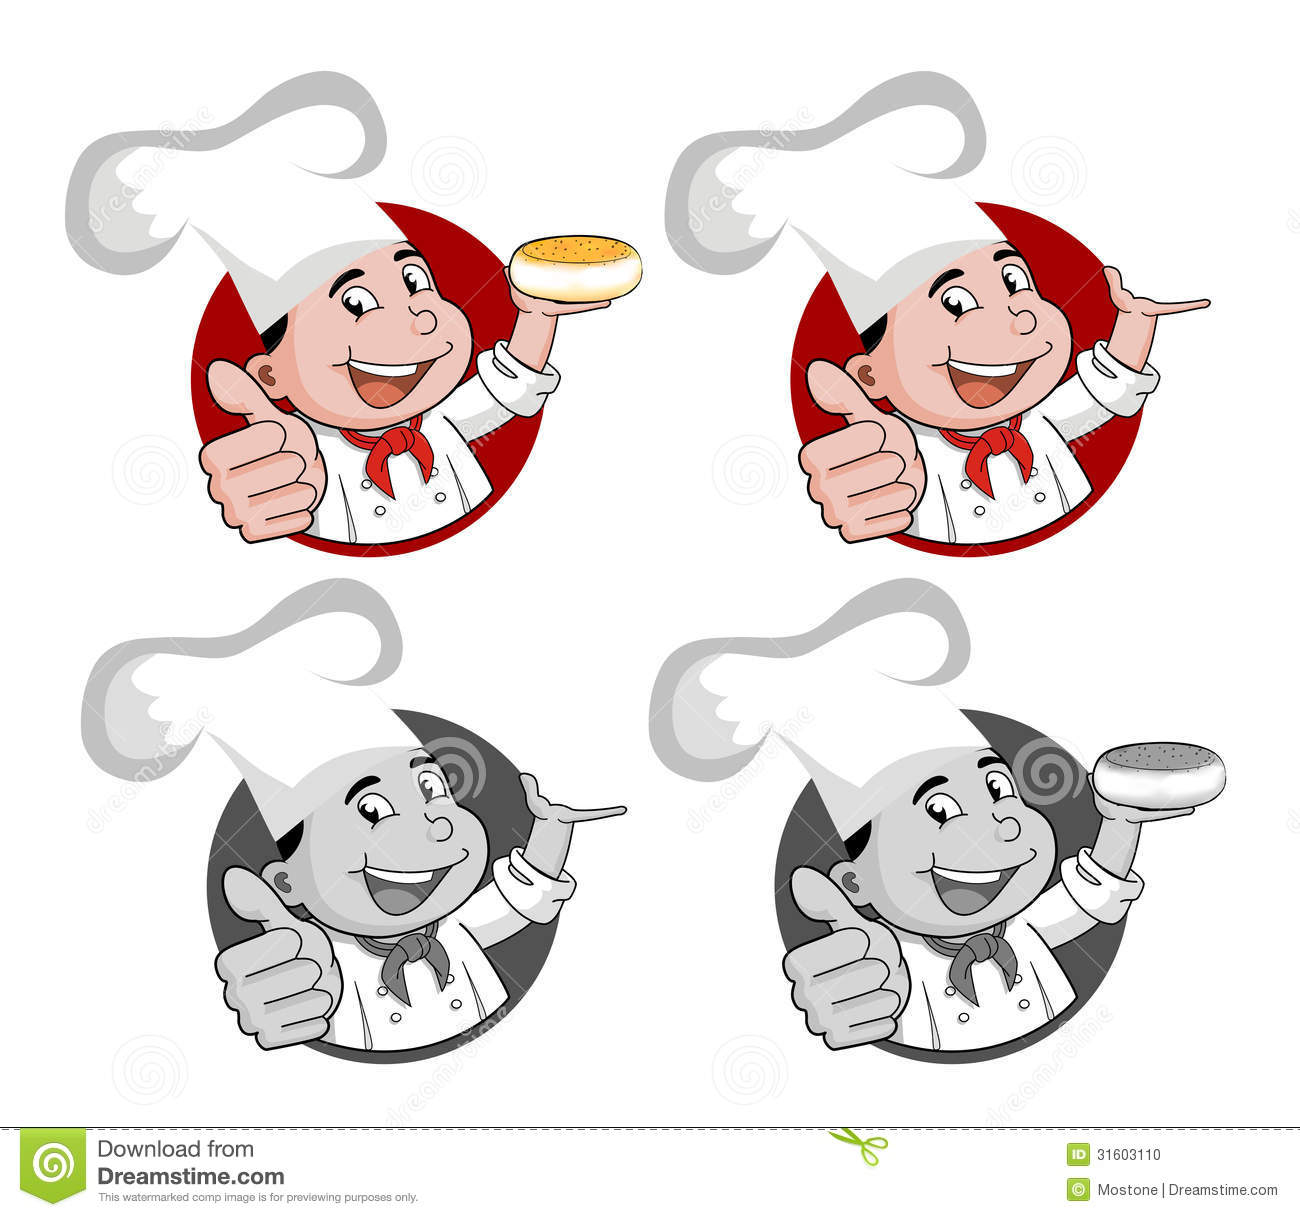 Illustration Of A Happy Smiling Cartoon Chef Stock Photo.